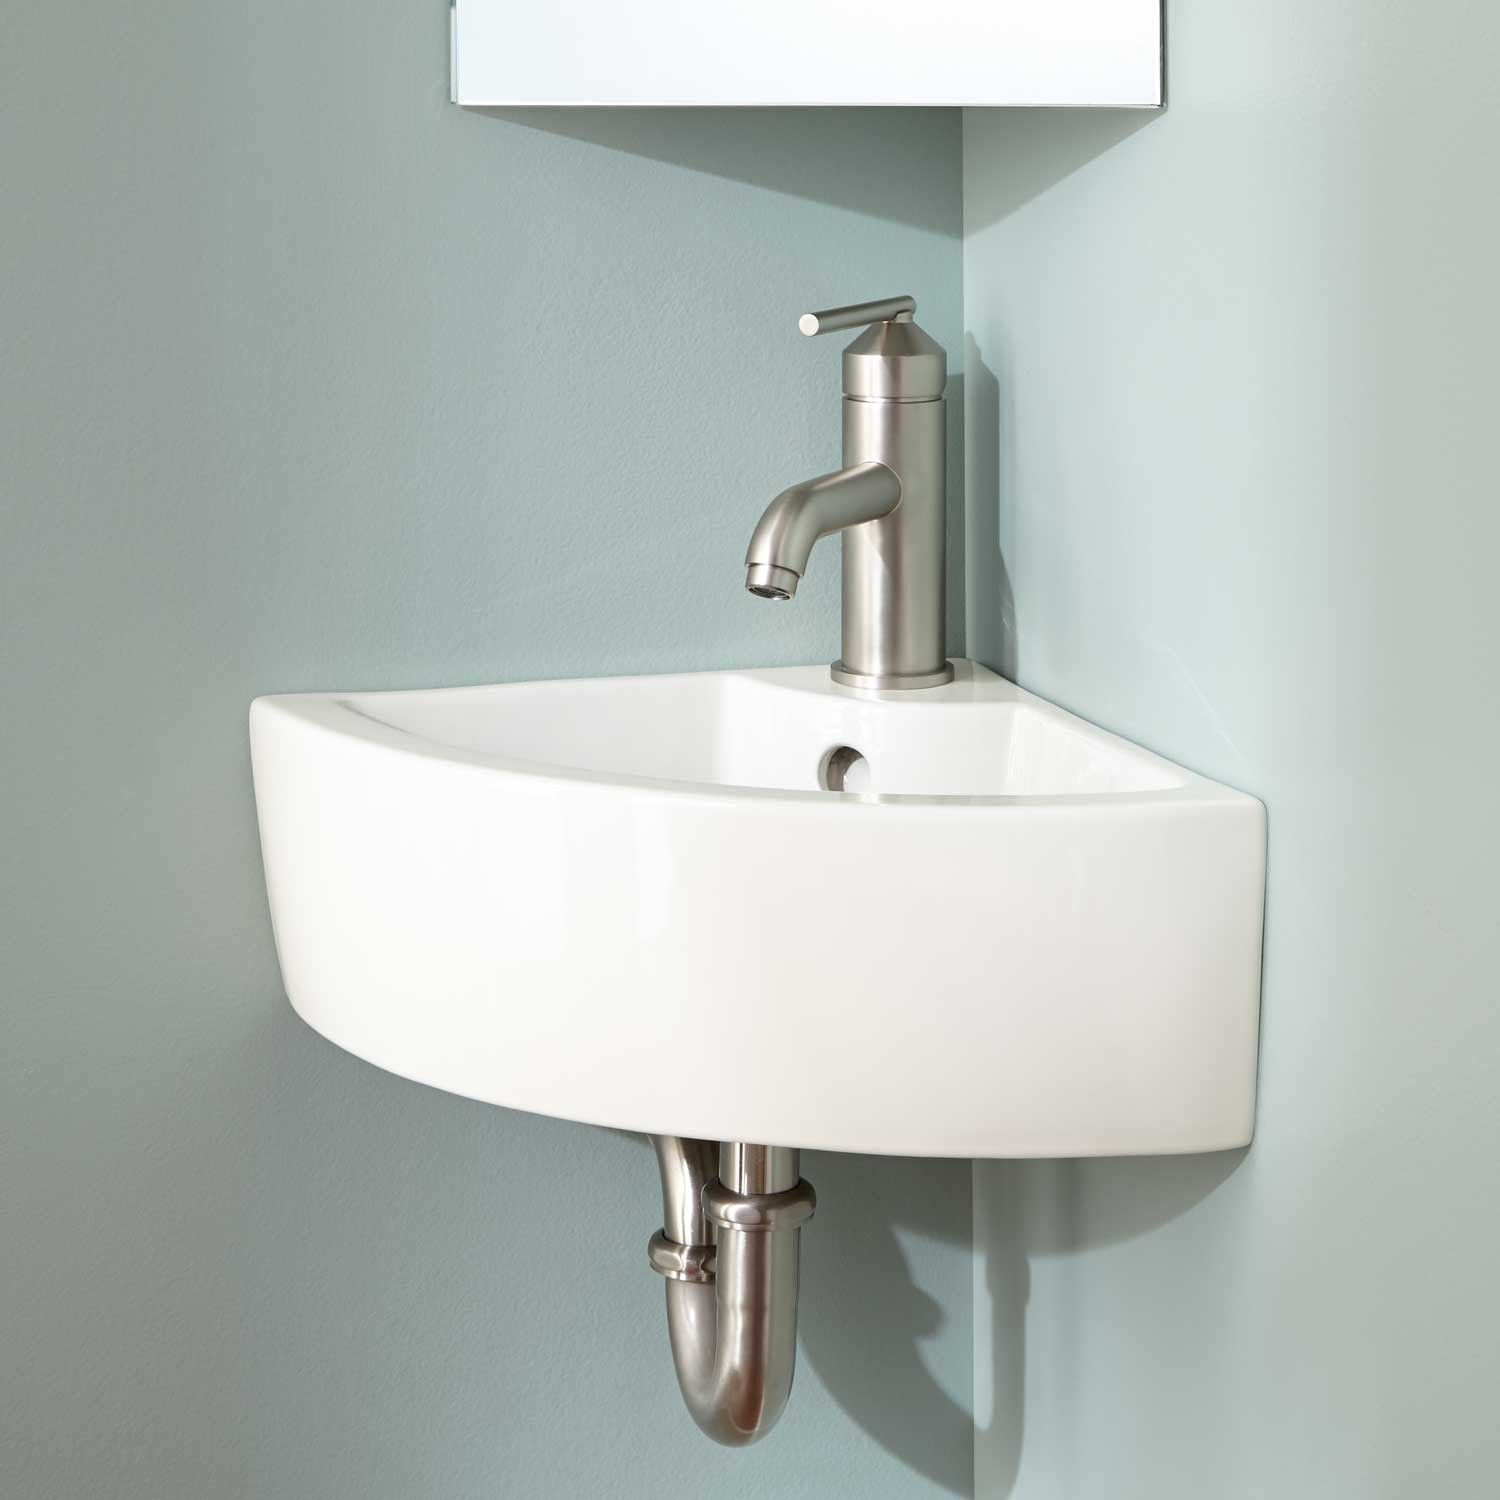 Amelda Wall Mount Corner Bathroom Sink Corner Pedestal Sink